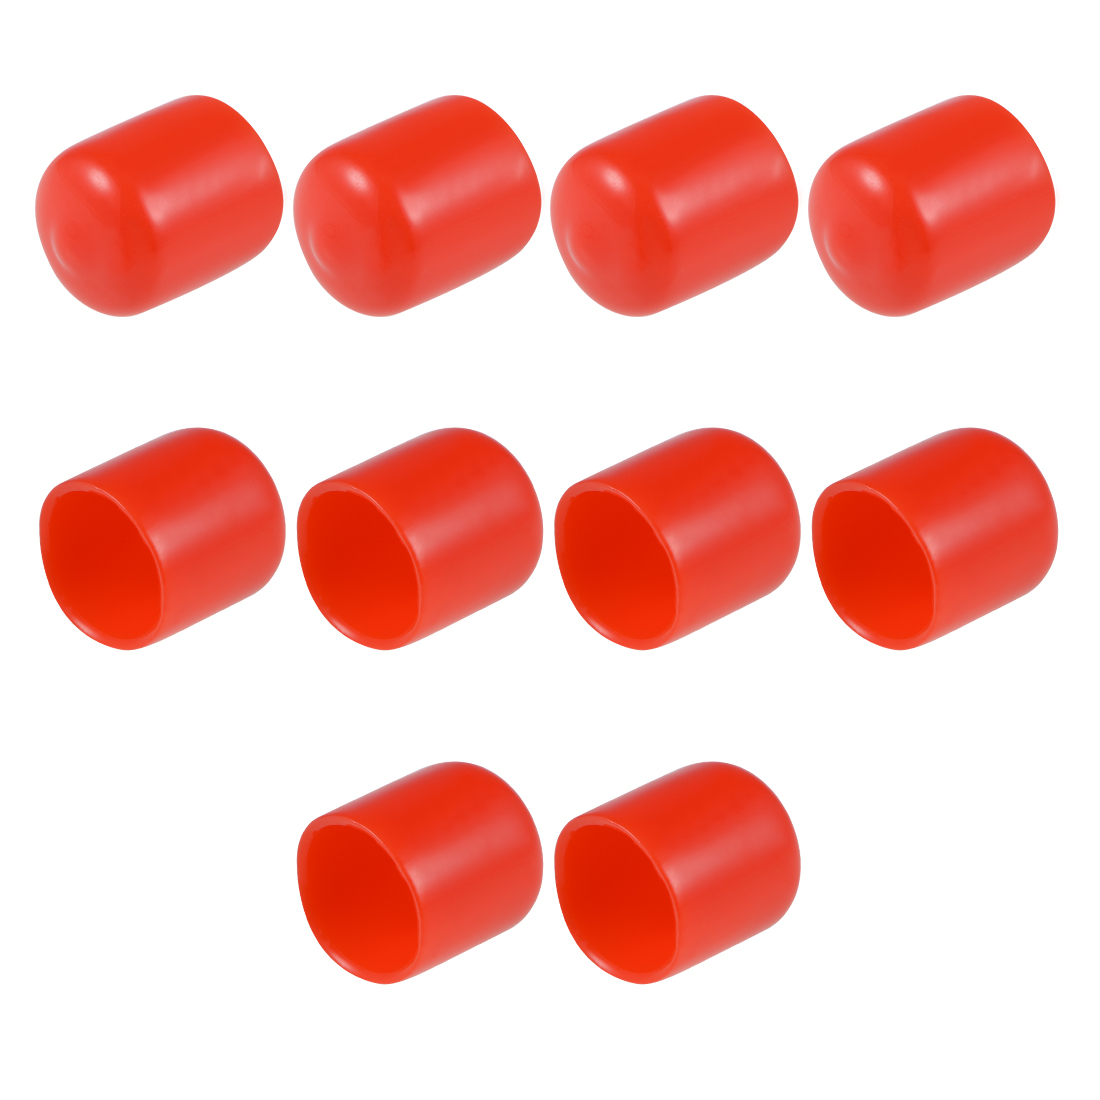 Screw Thread Protectors, 16mm ID 21mm Length Round End Cap Cover Red 10pcs